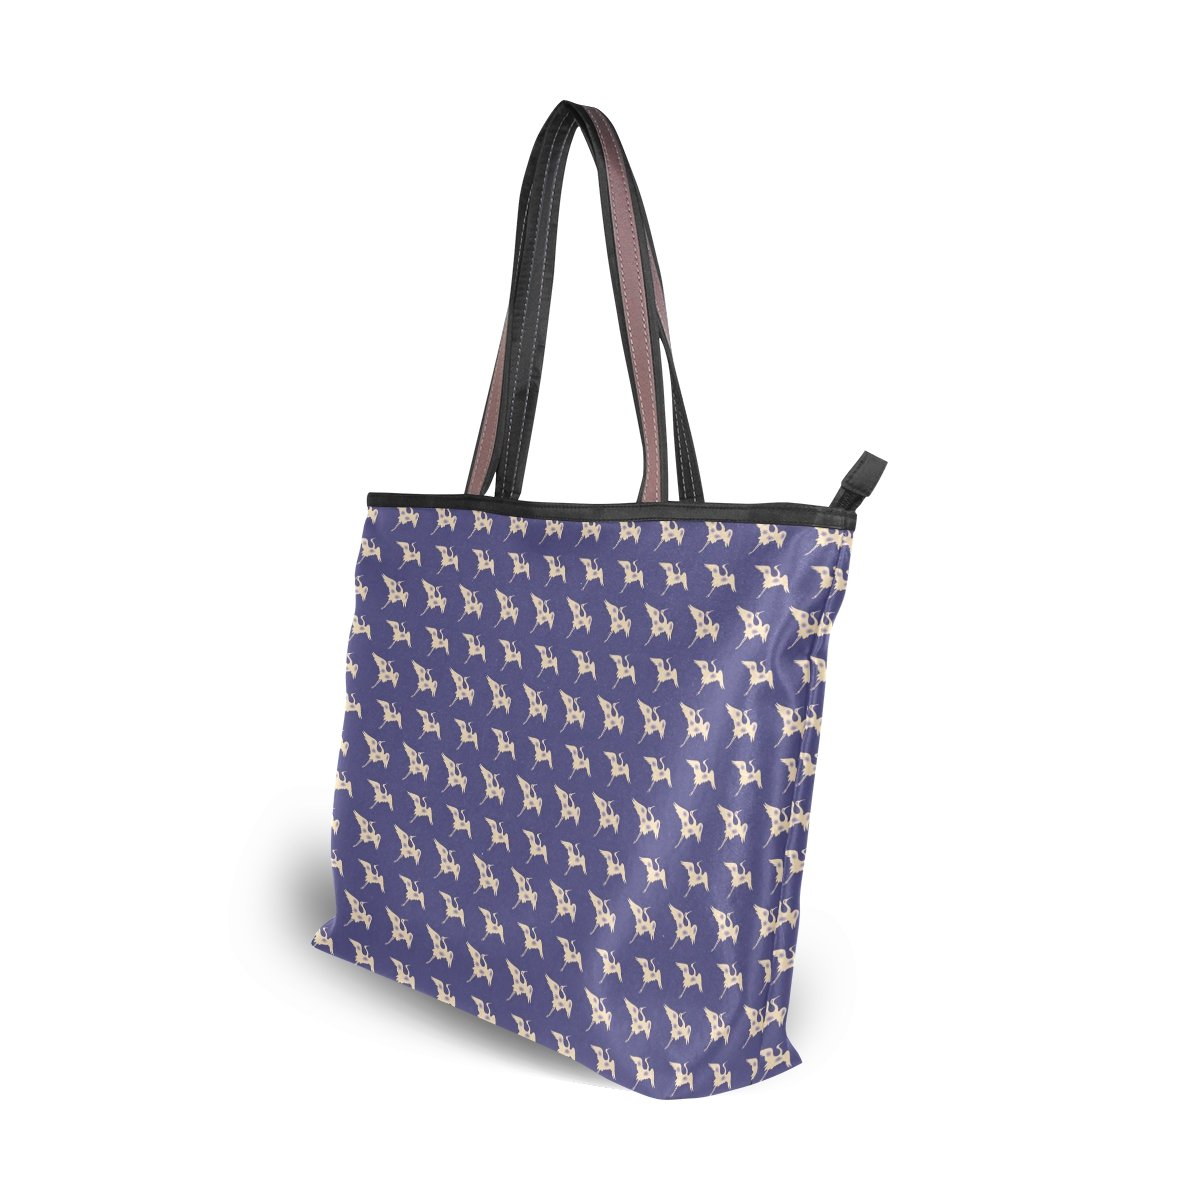 LEEZONE Microfiber Shoulder Handbags with Crane Pattern Tote Bags